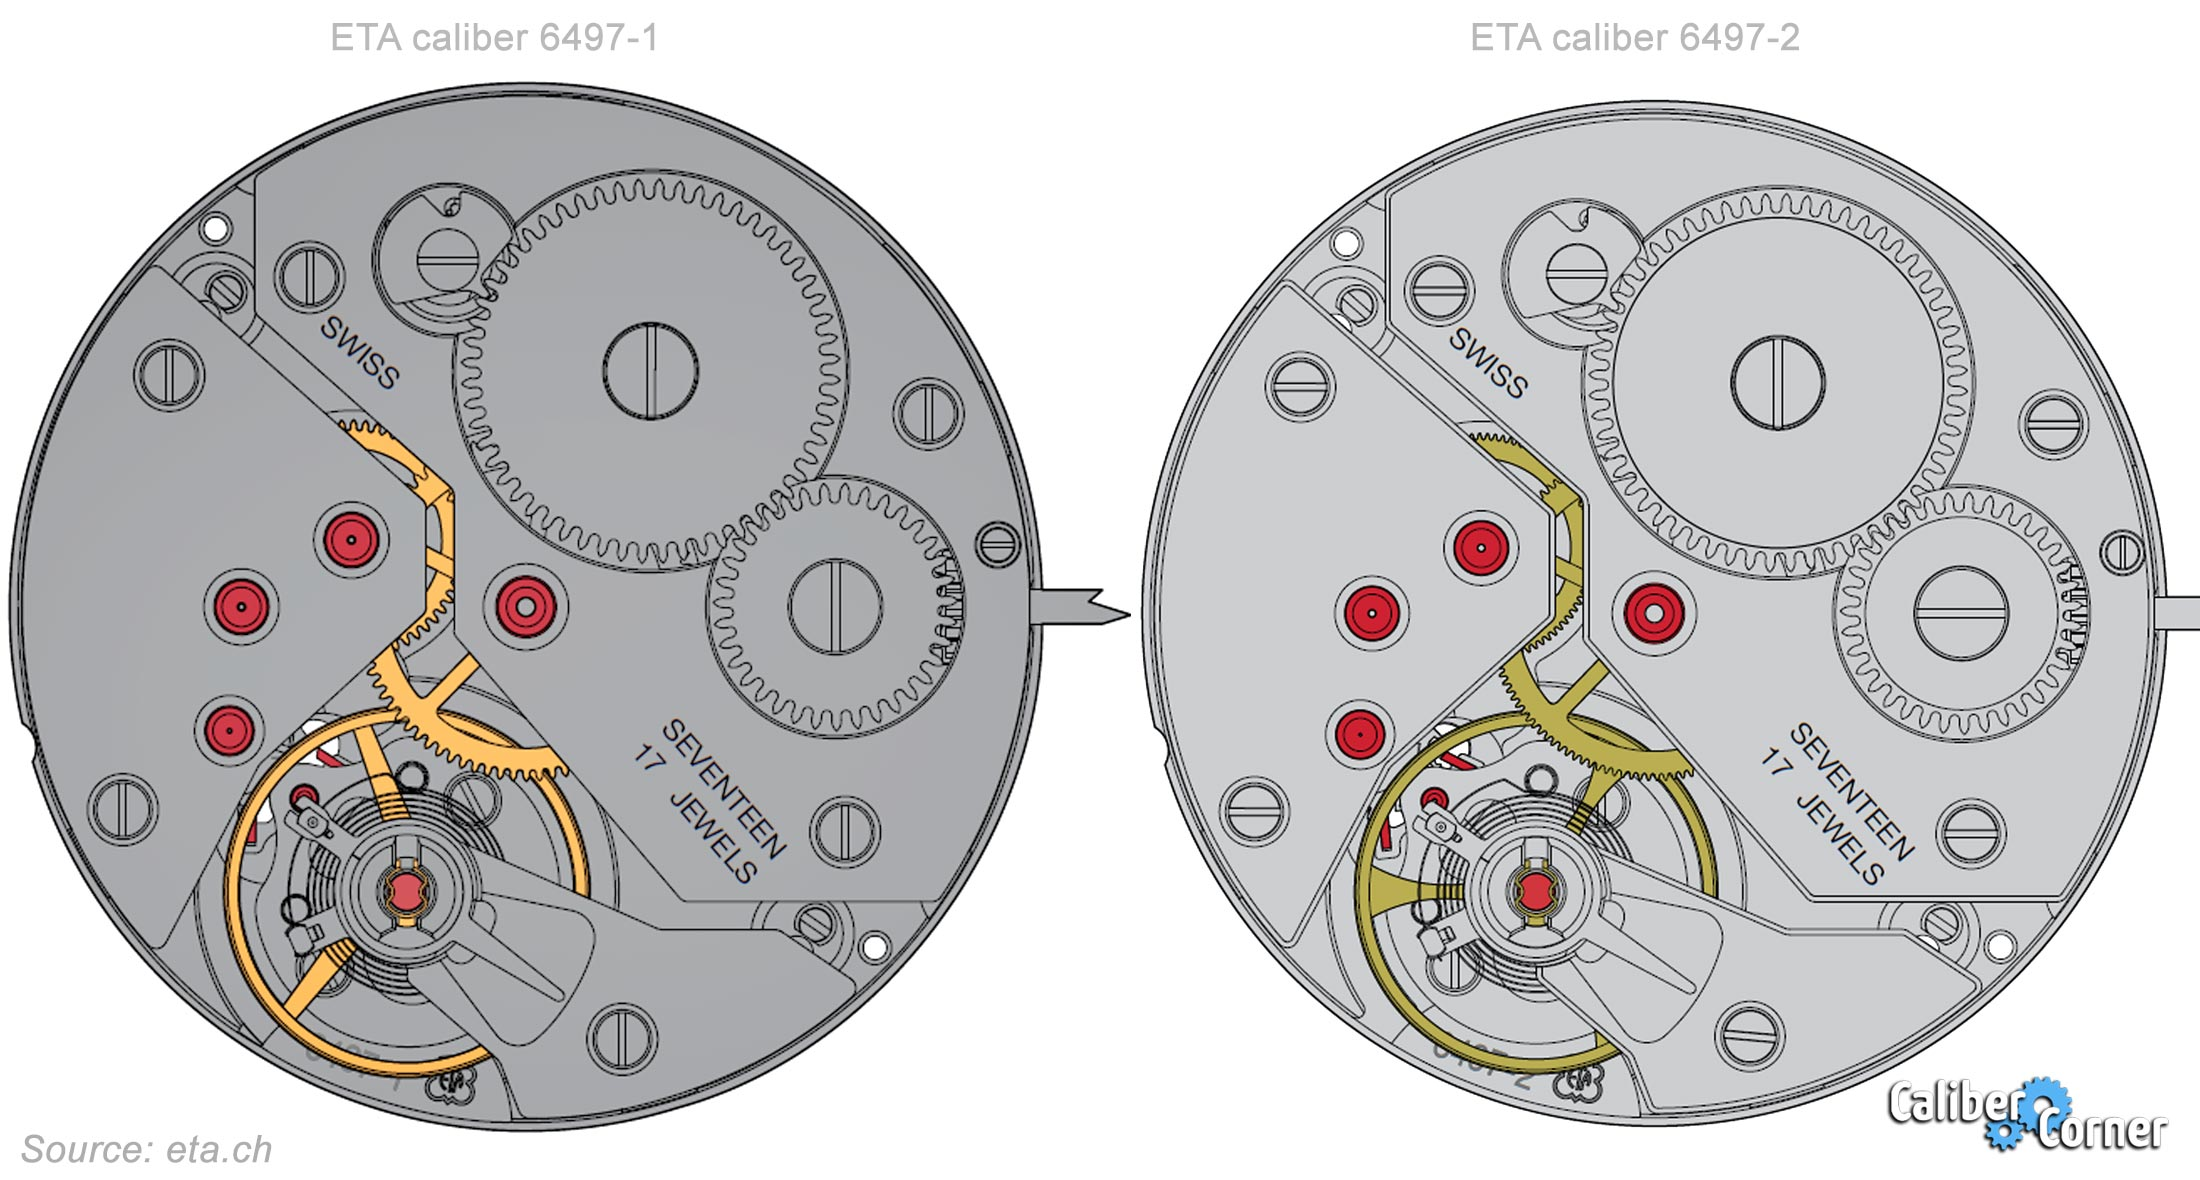 Eta Unitas 6497 1 2 Comparison Drawings